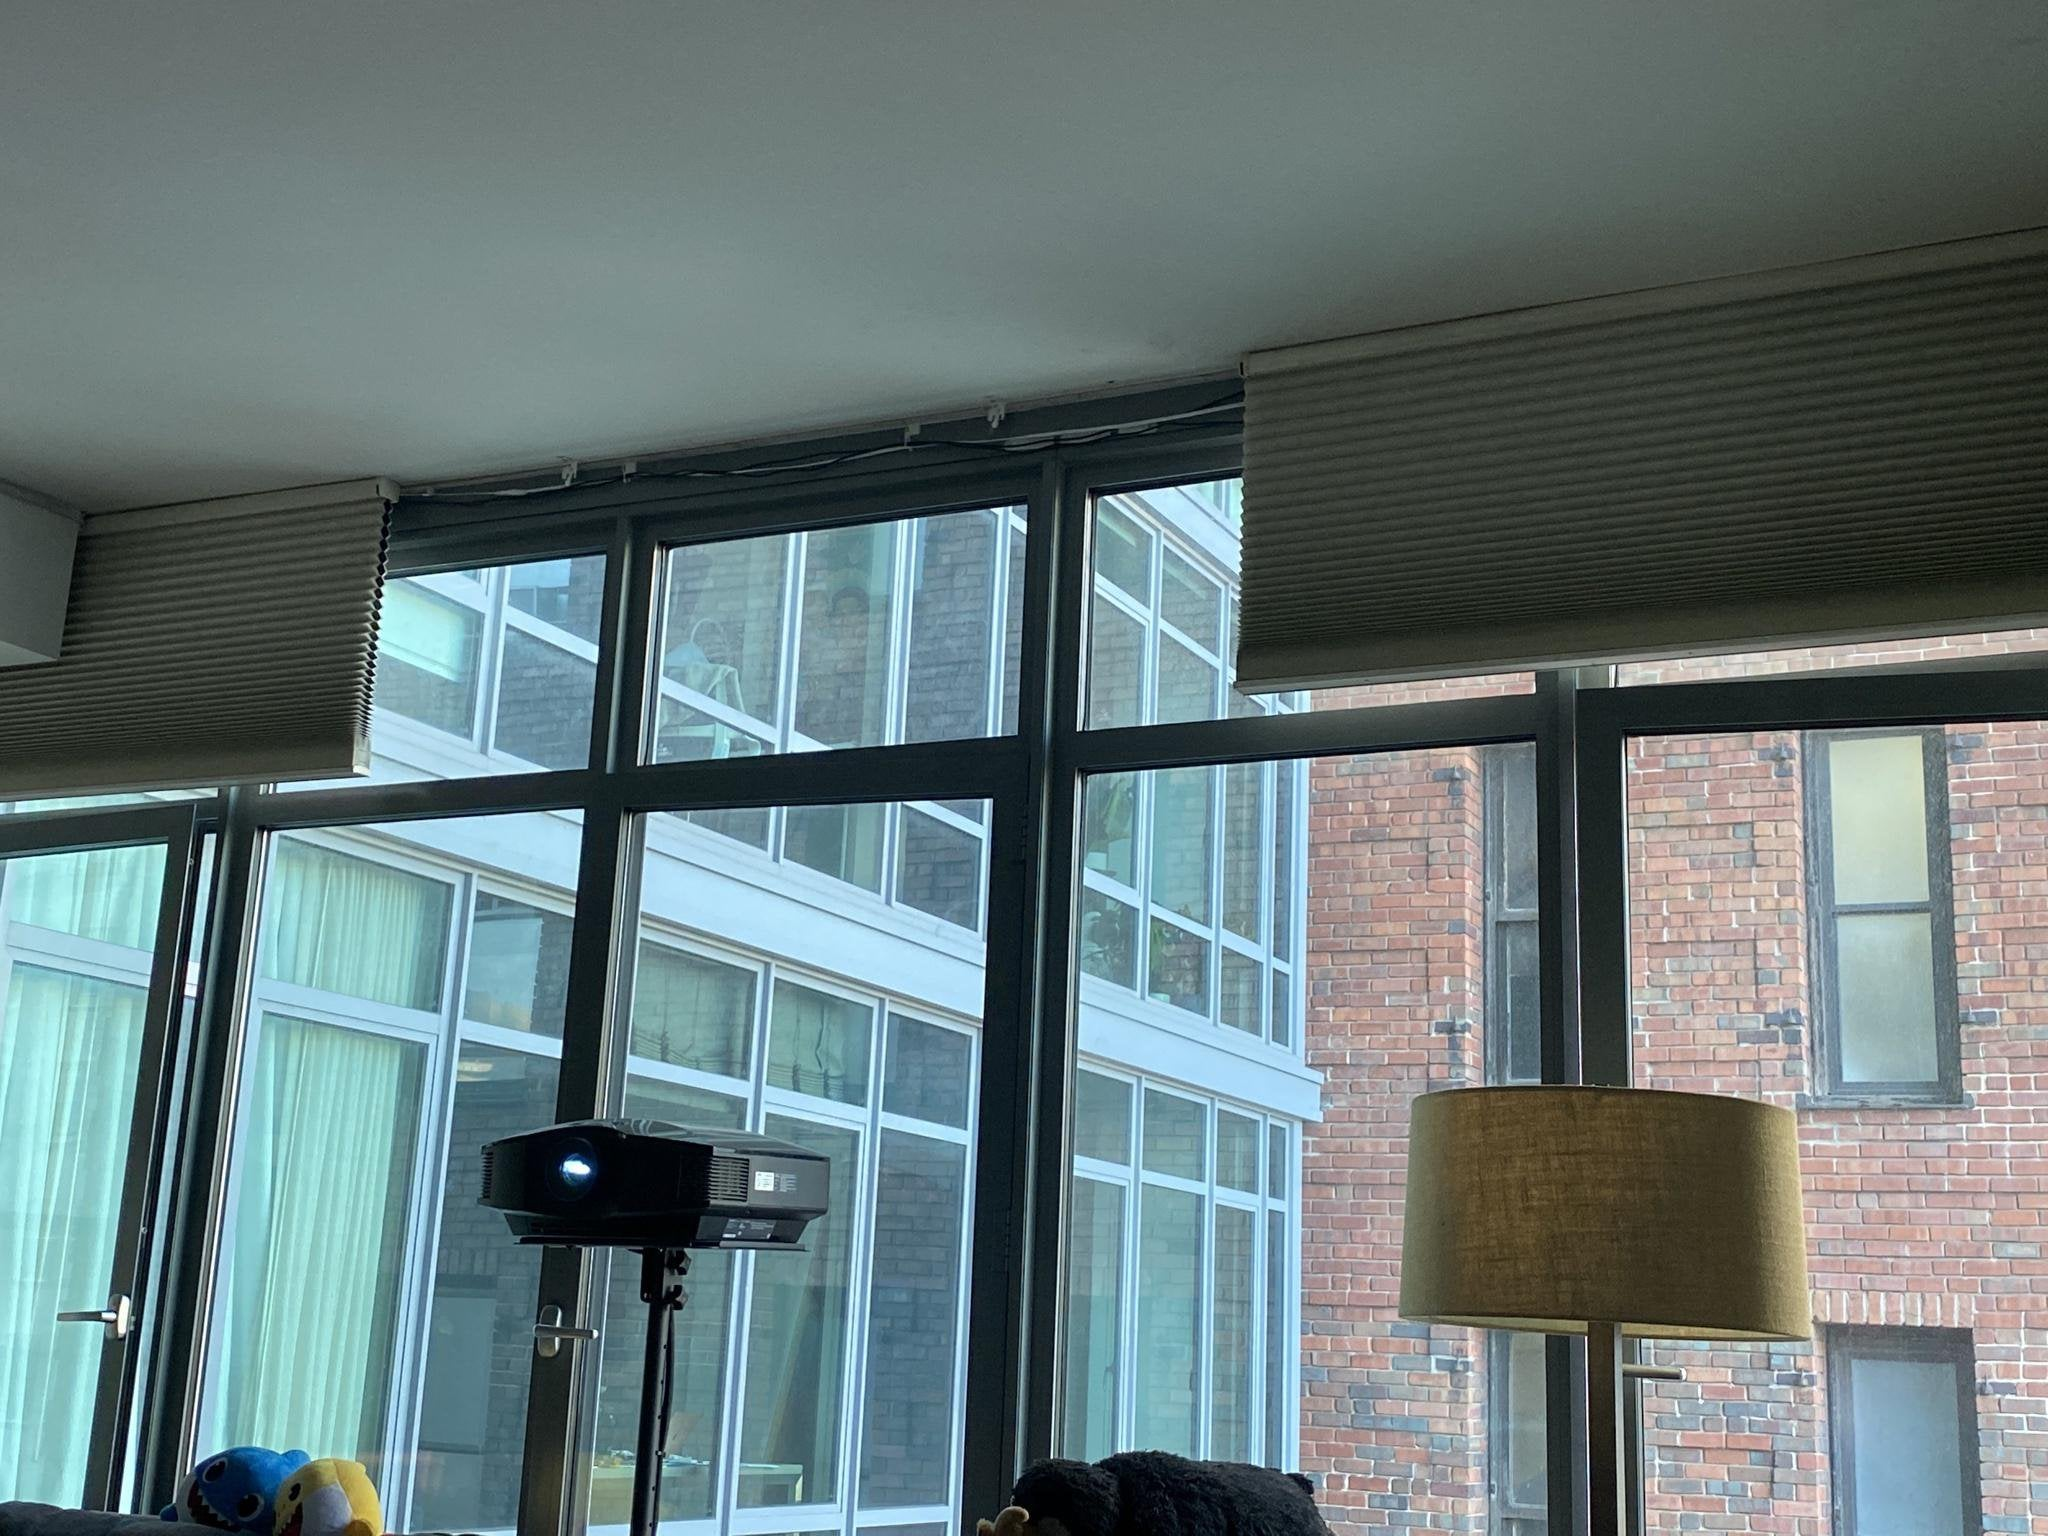 Help me save the blinds is it possible to